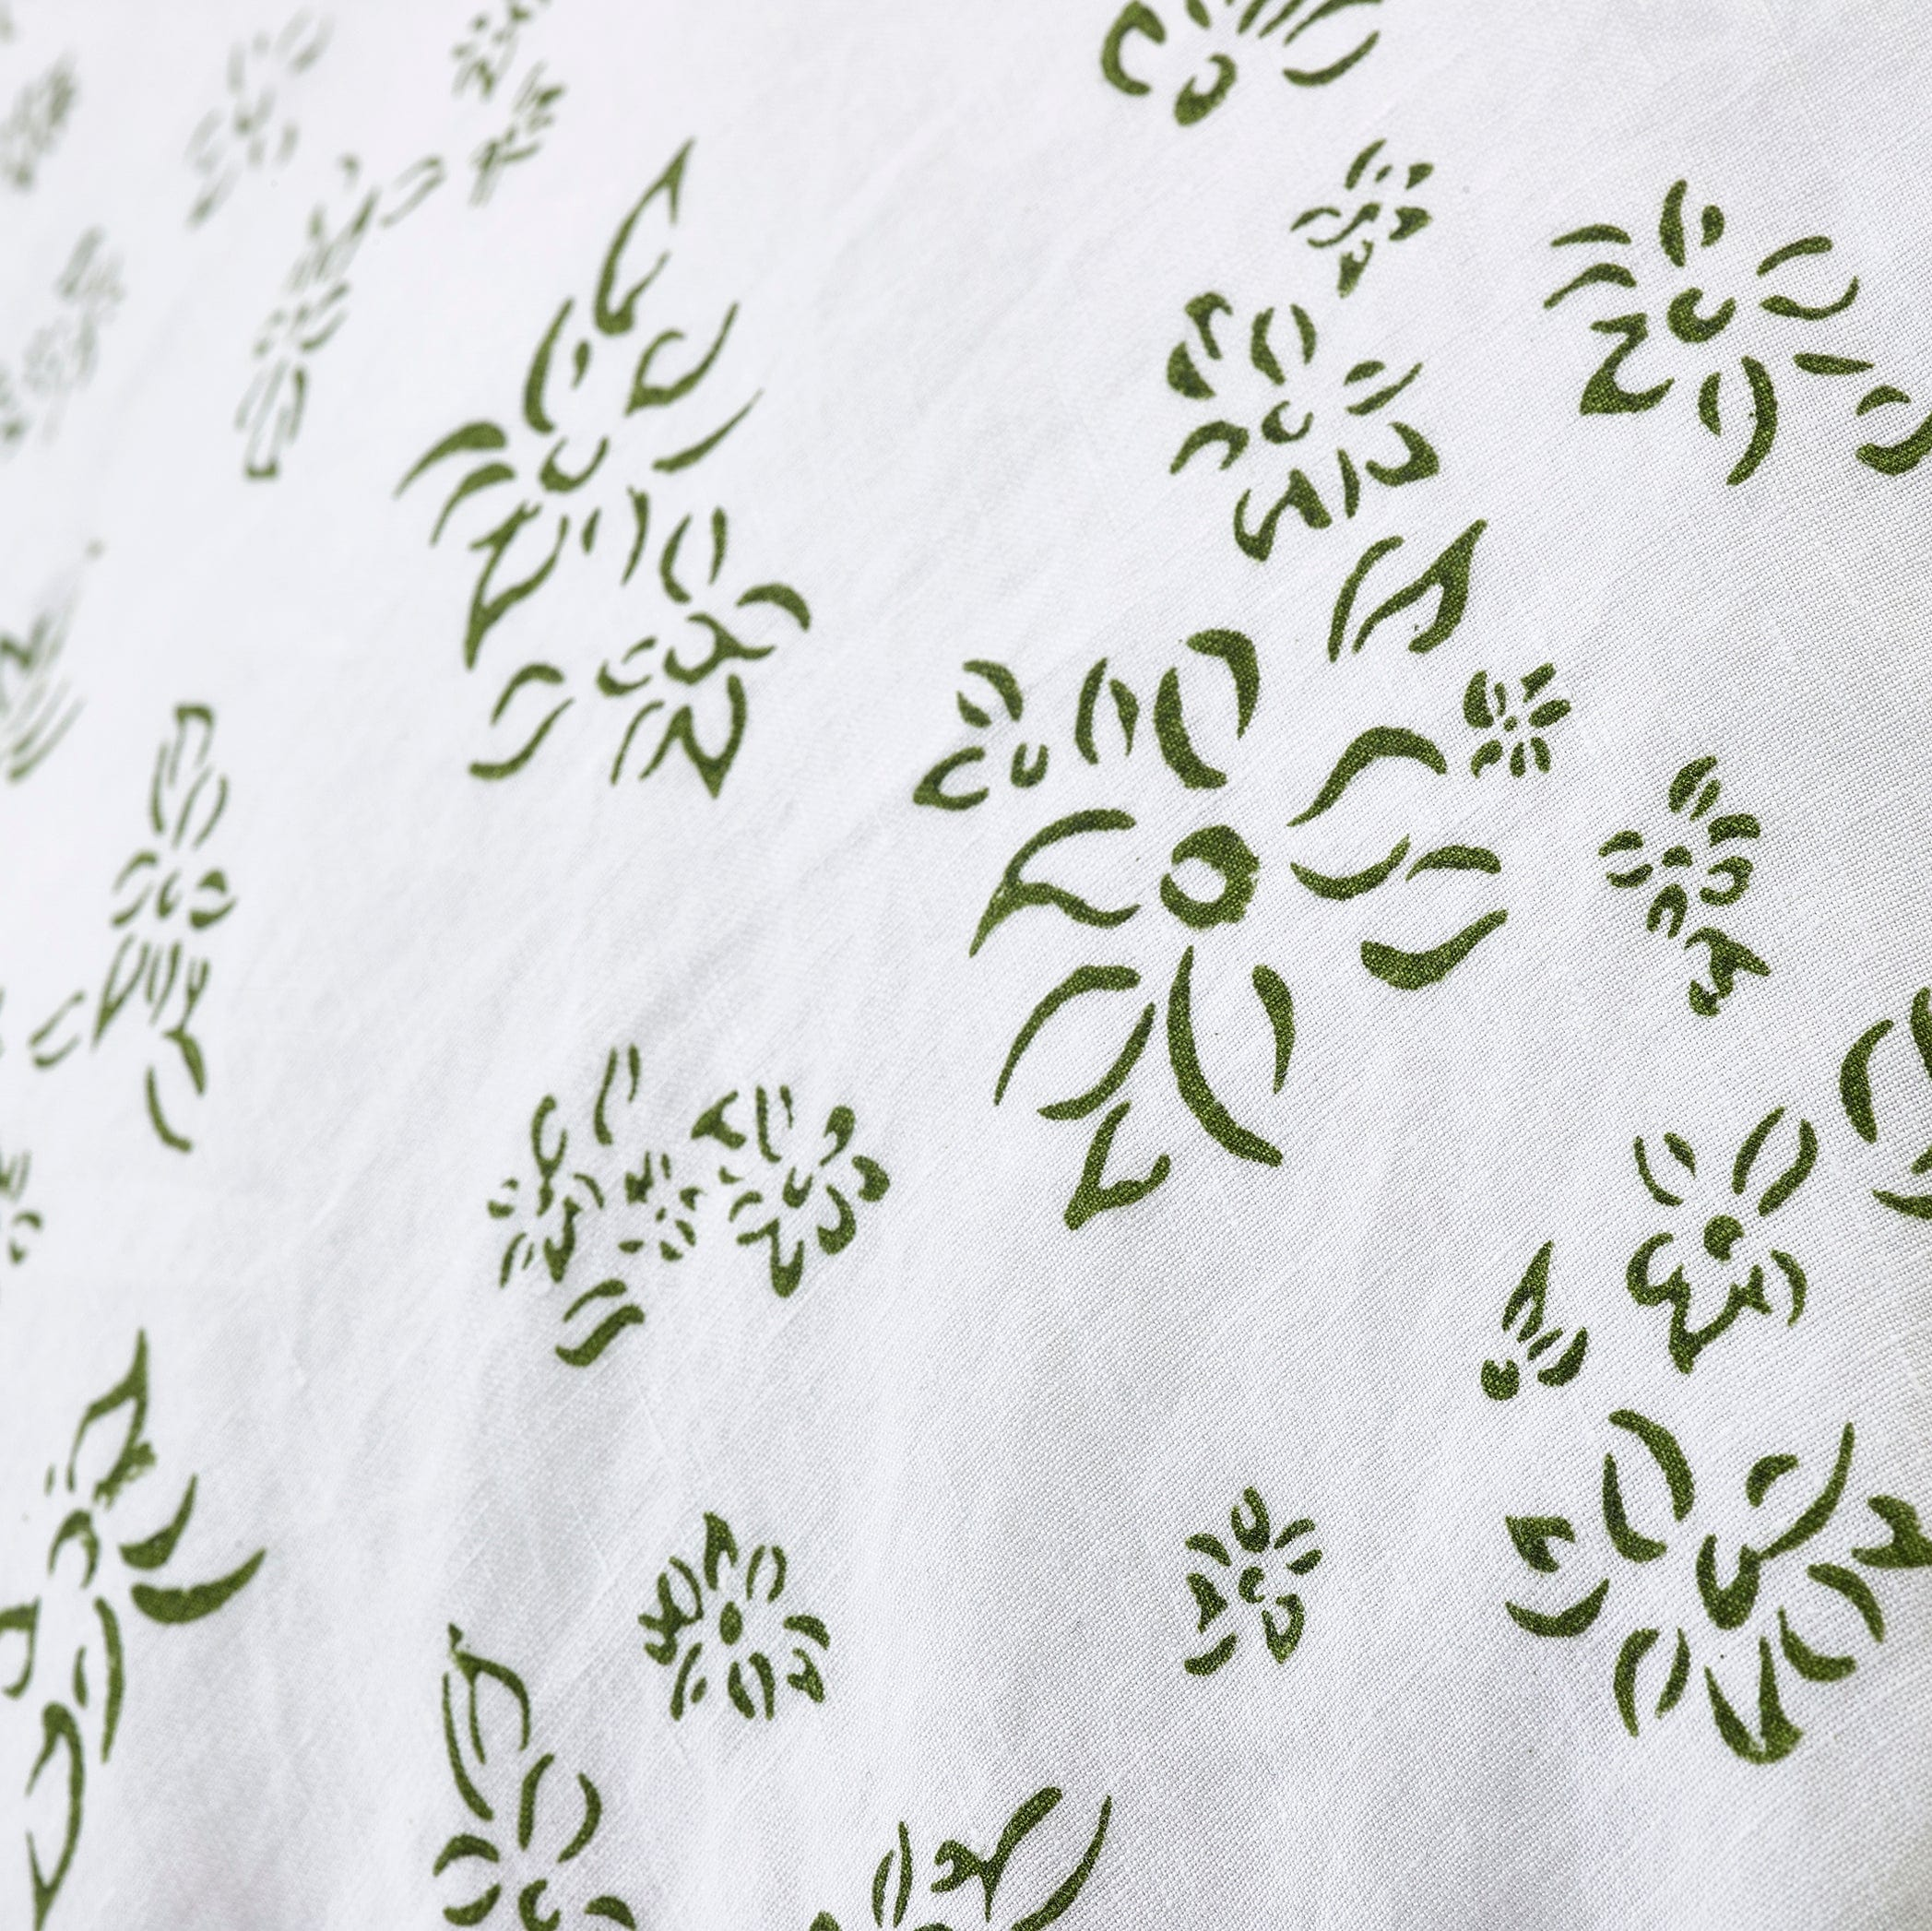 """Bernadette's Hand Stamped Falling Flower"" Linen Bed Set in Avocado Green, King"